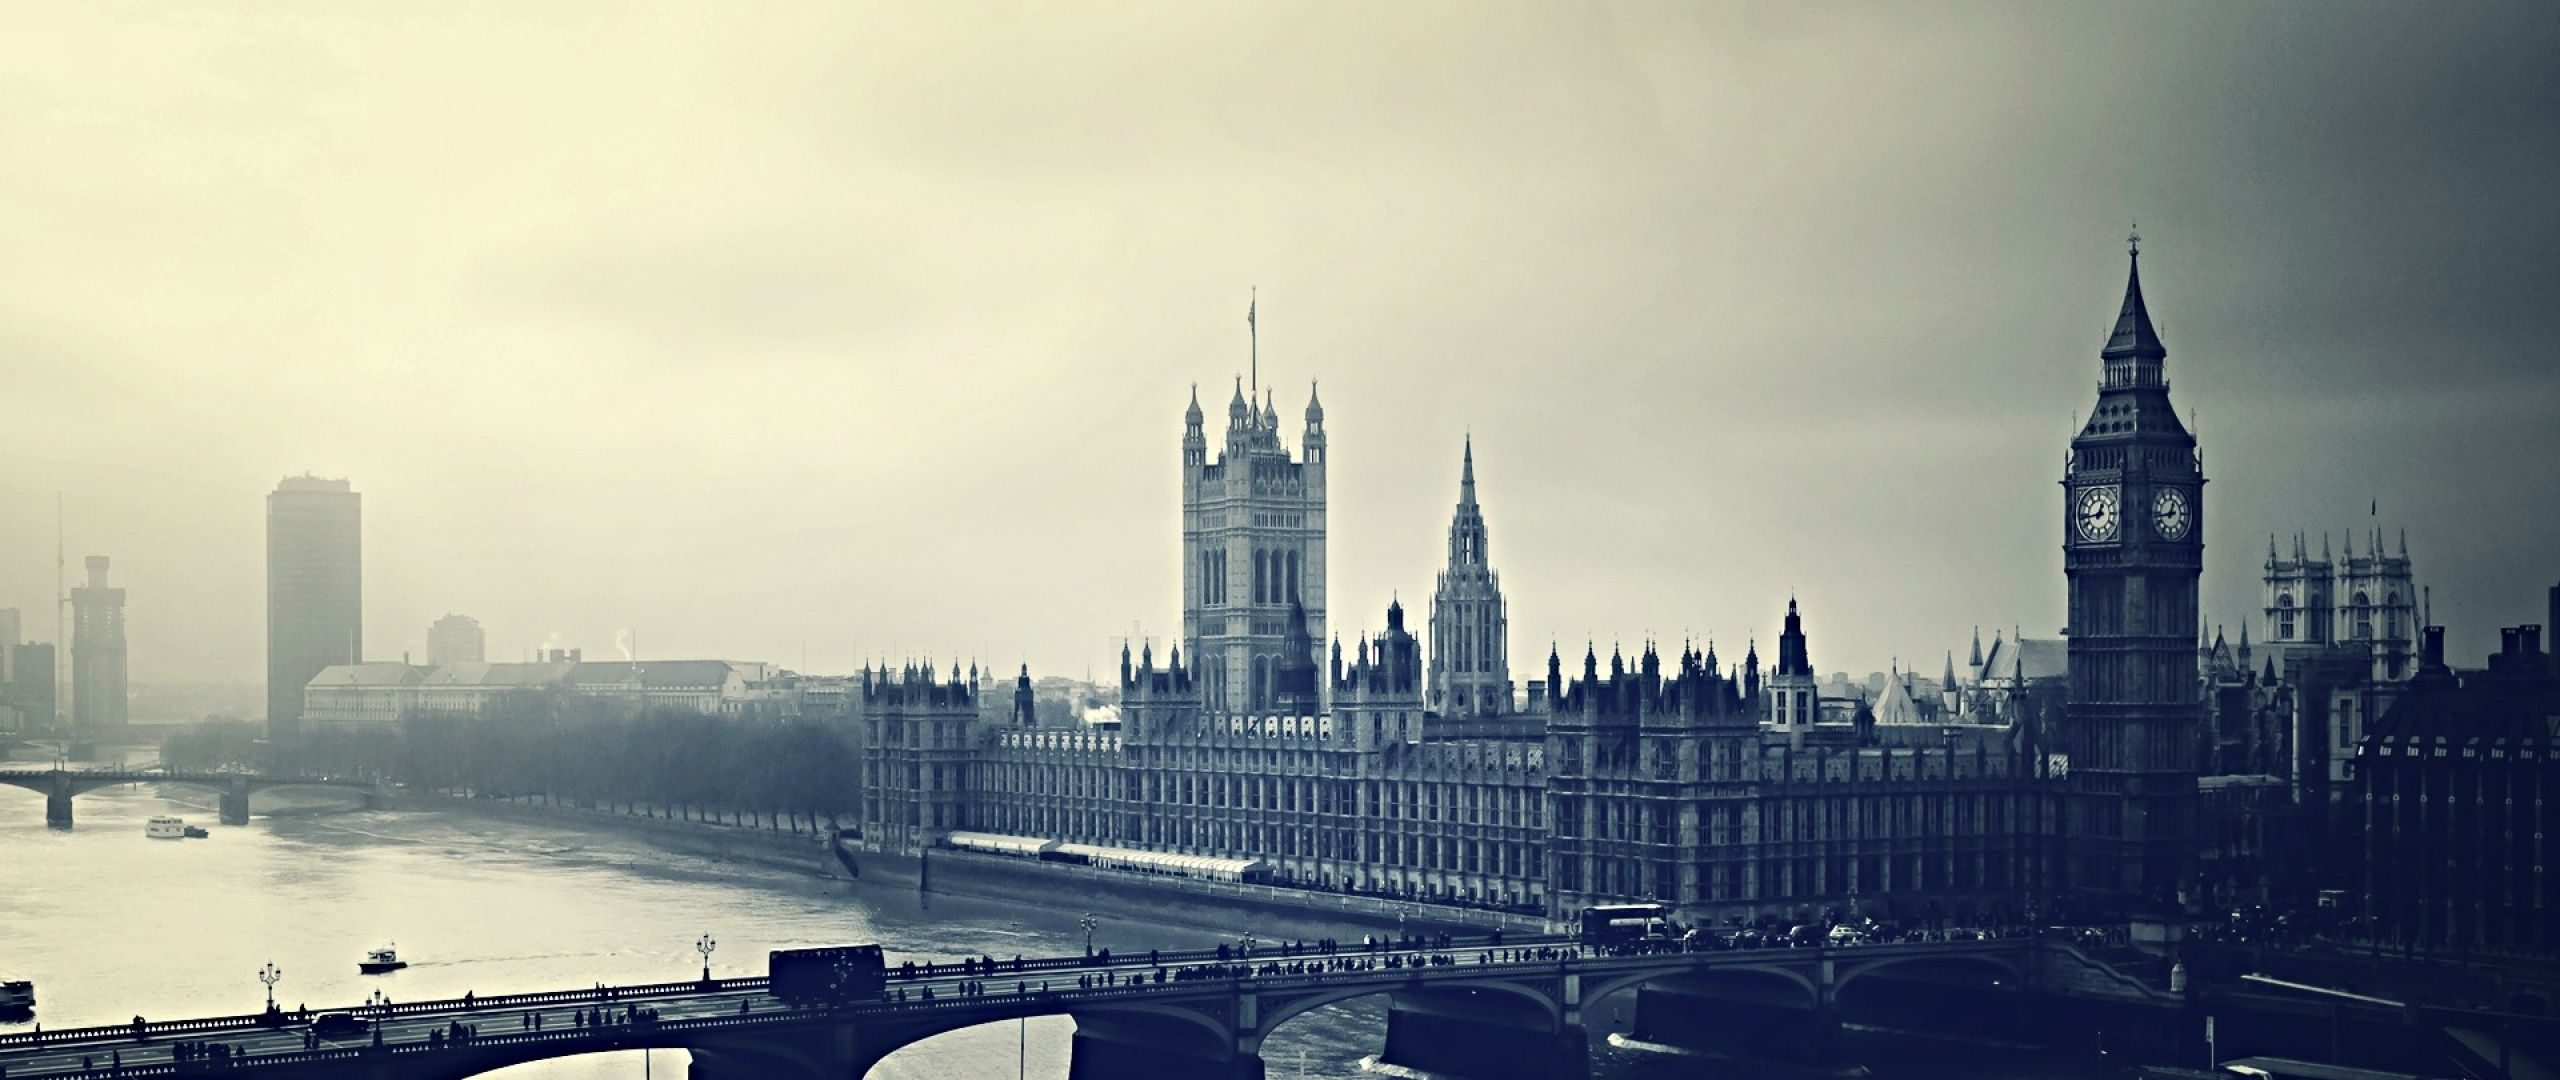 london at night black and white wallpaper images wallpapers